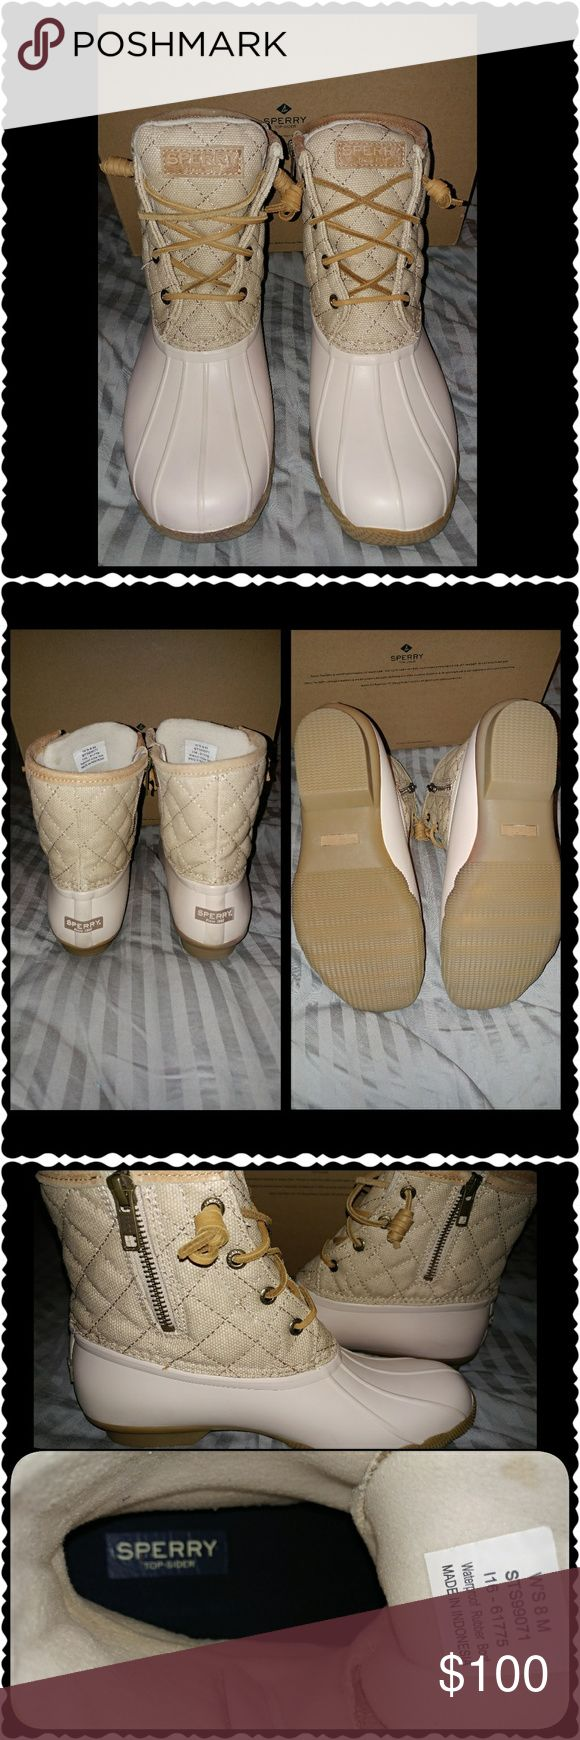 NWOT: Sperry Top-Sider Boots: New In Box (box does not have a top):  Sperry Top-Sider Saltwater Duck Boot. This Sperry Boot has a non-marking rubber outsole with slip resistance.  Reasonable Offers Accepted When Made.  ** Next Day Shipping ** Shoes